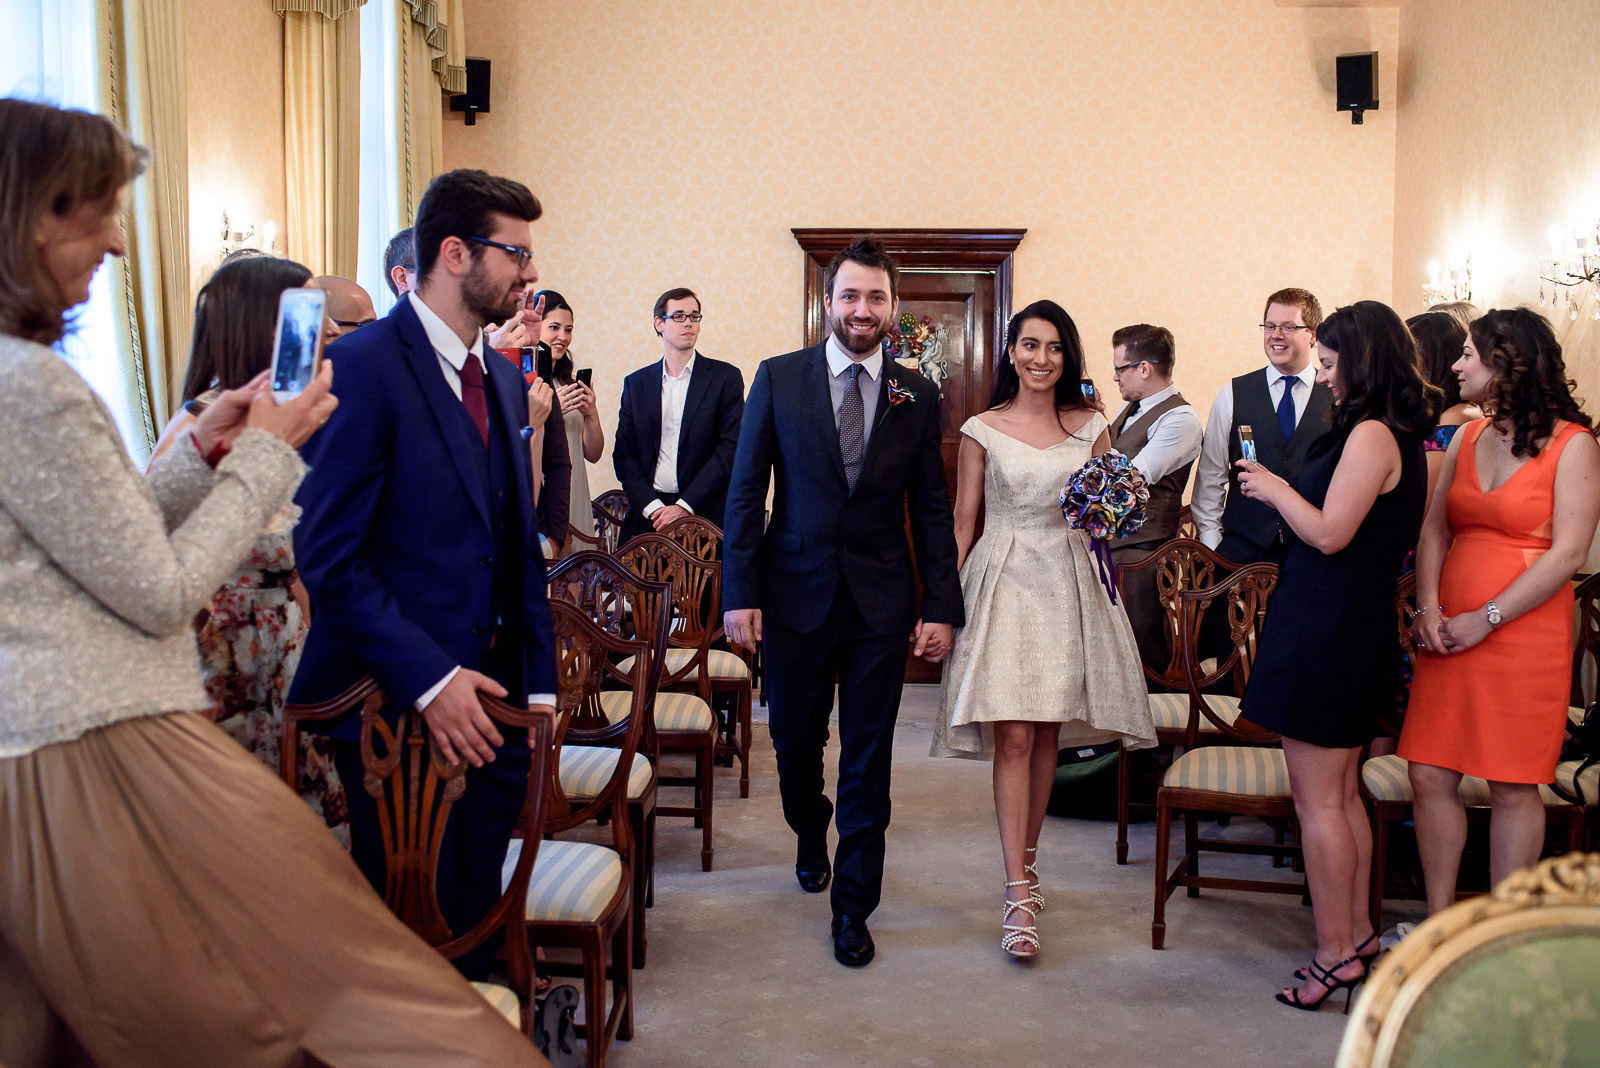 wedding ceremony at Chelsea Old Town Hall